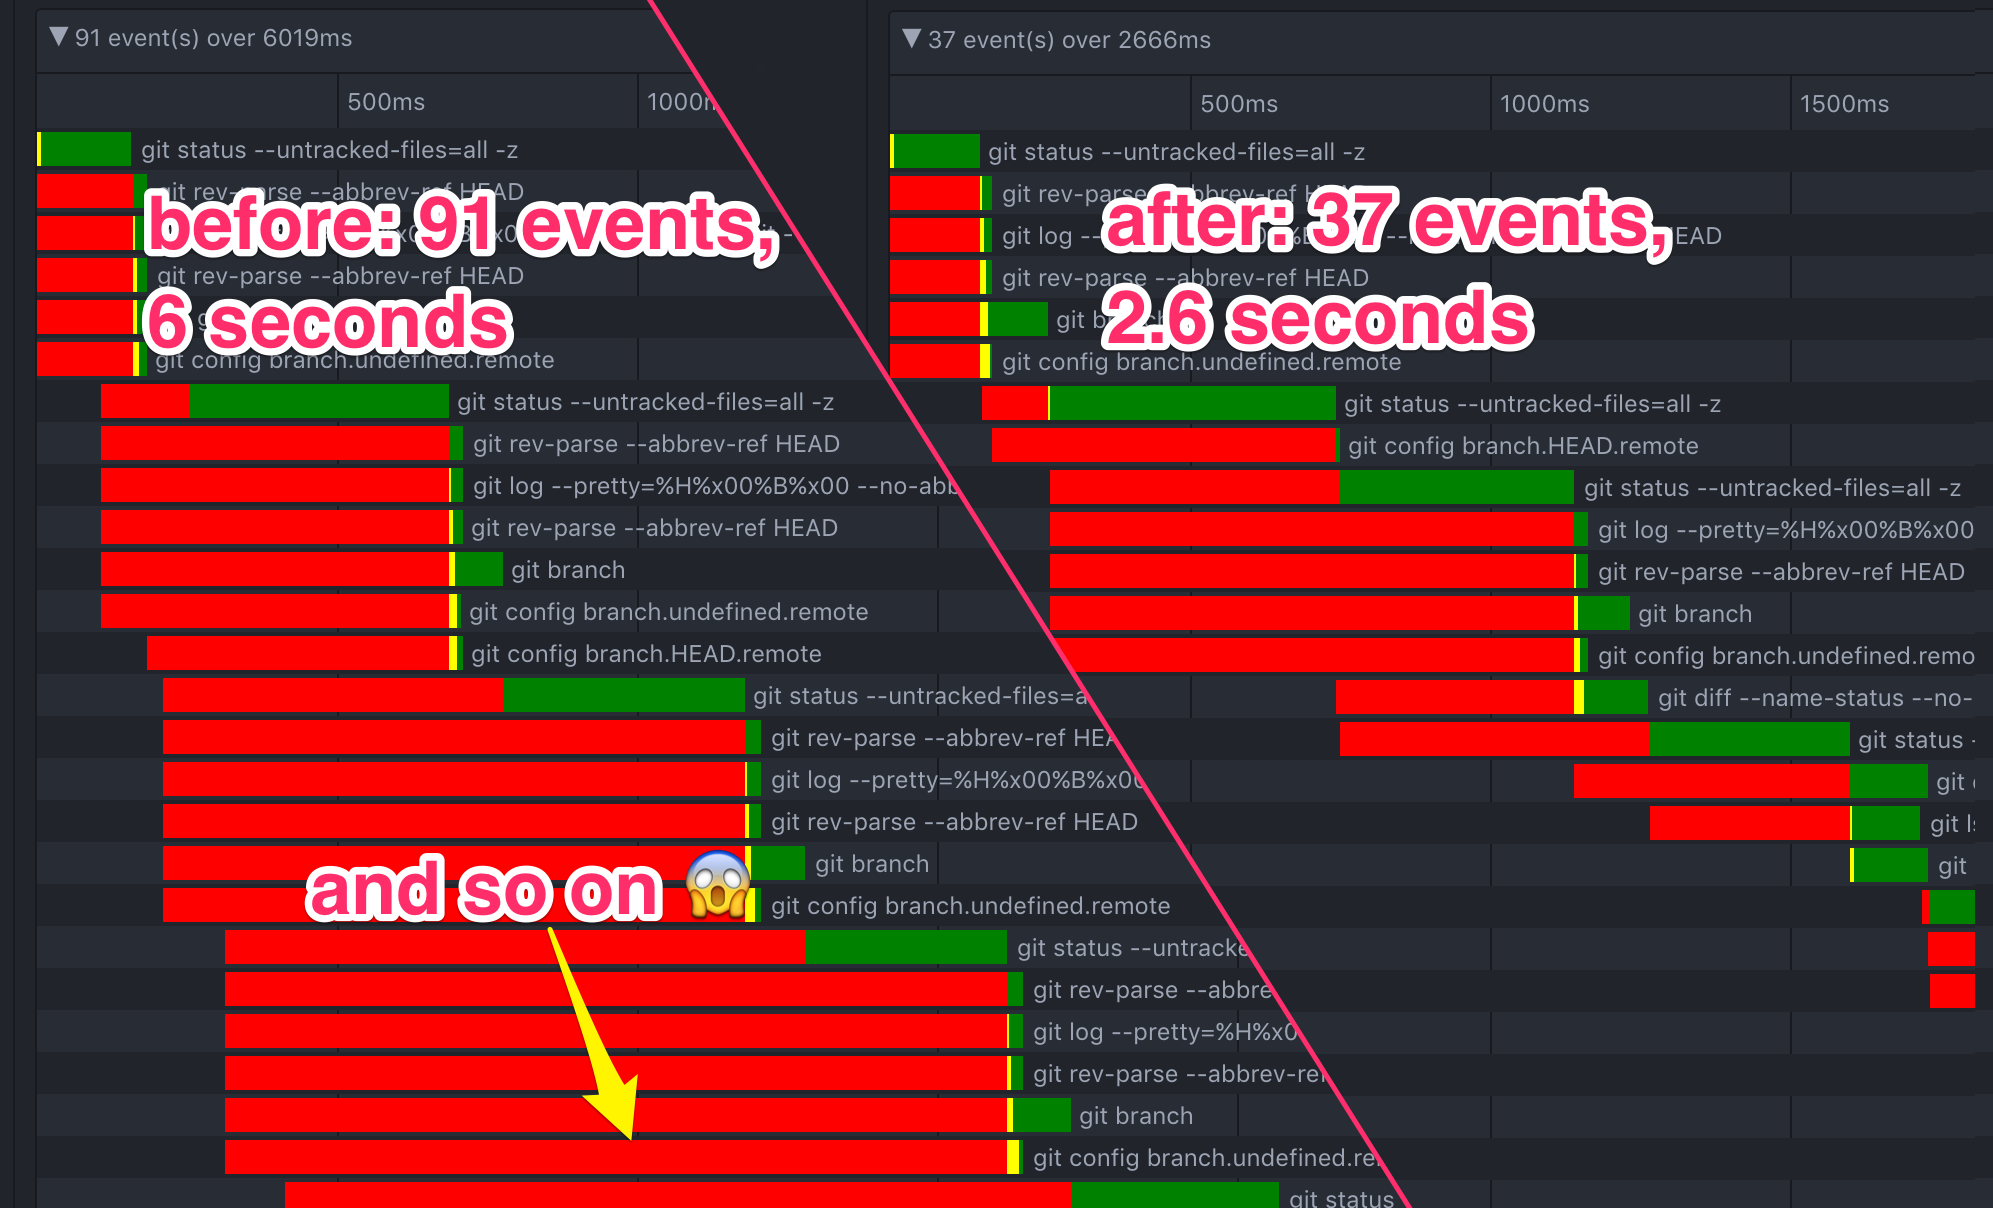 Prevent ModelObserver update backlogs: before 91 events taking 6s, after 37 events taking 2.5s